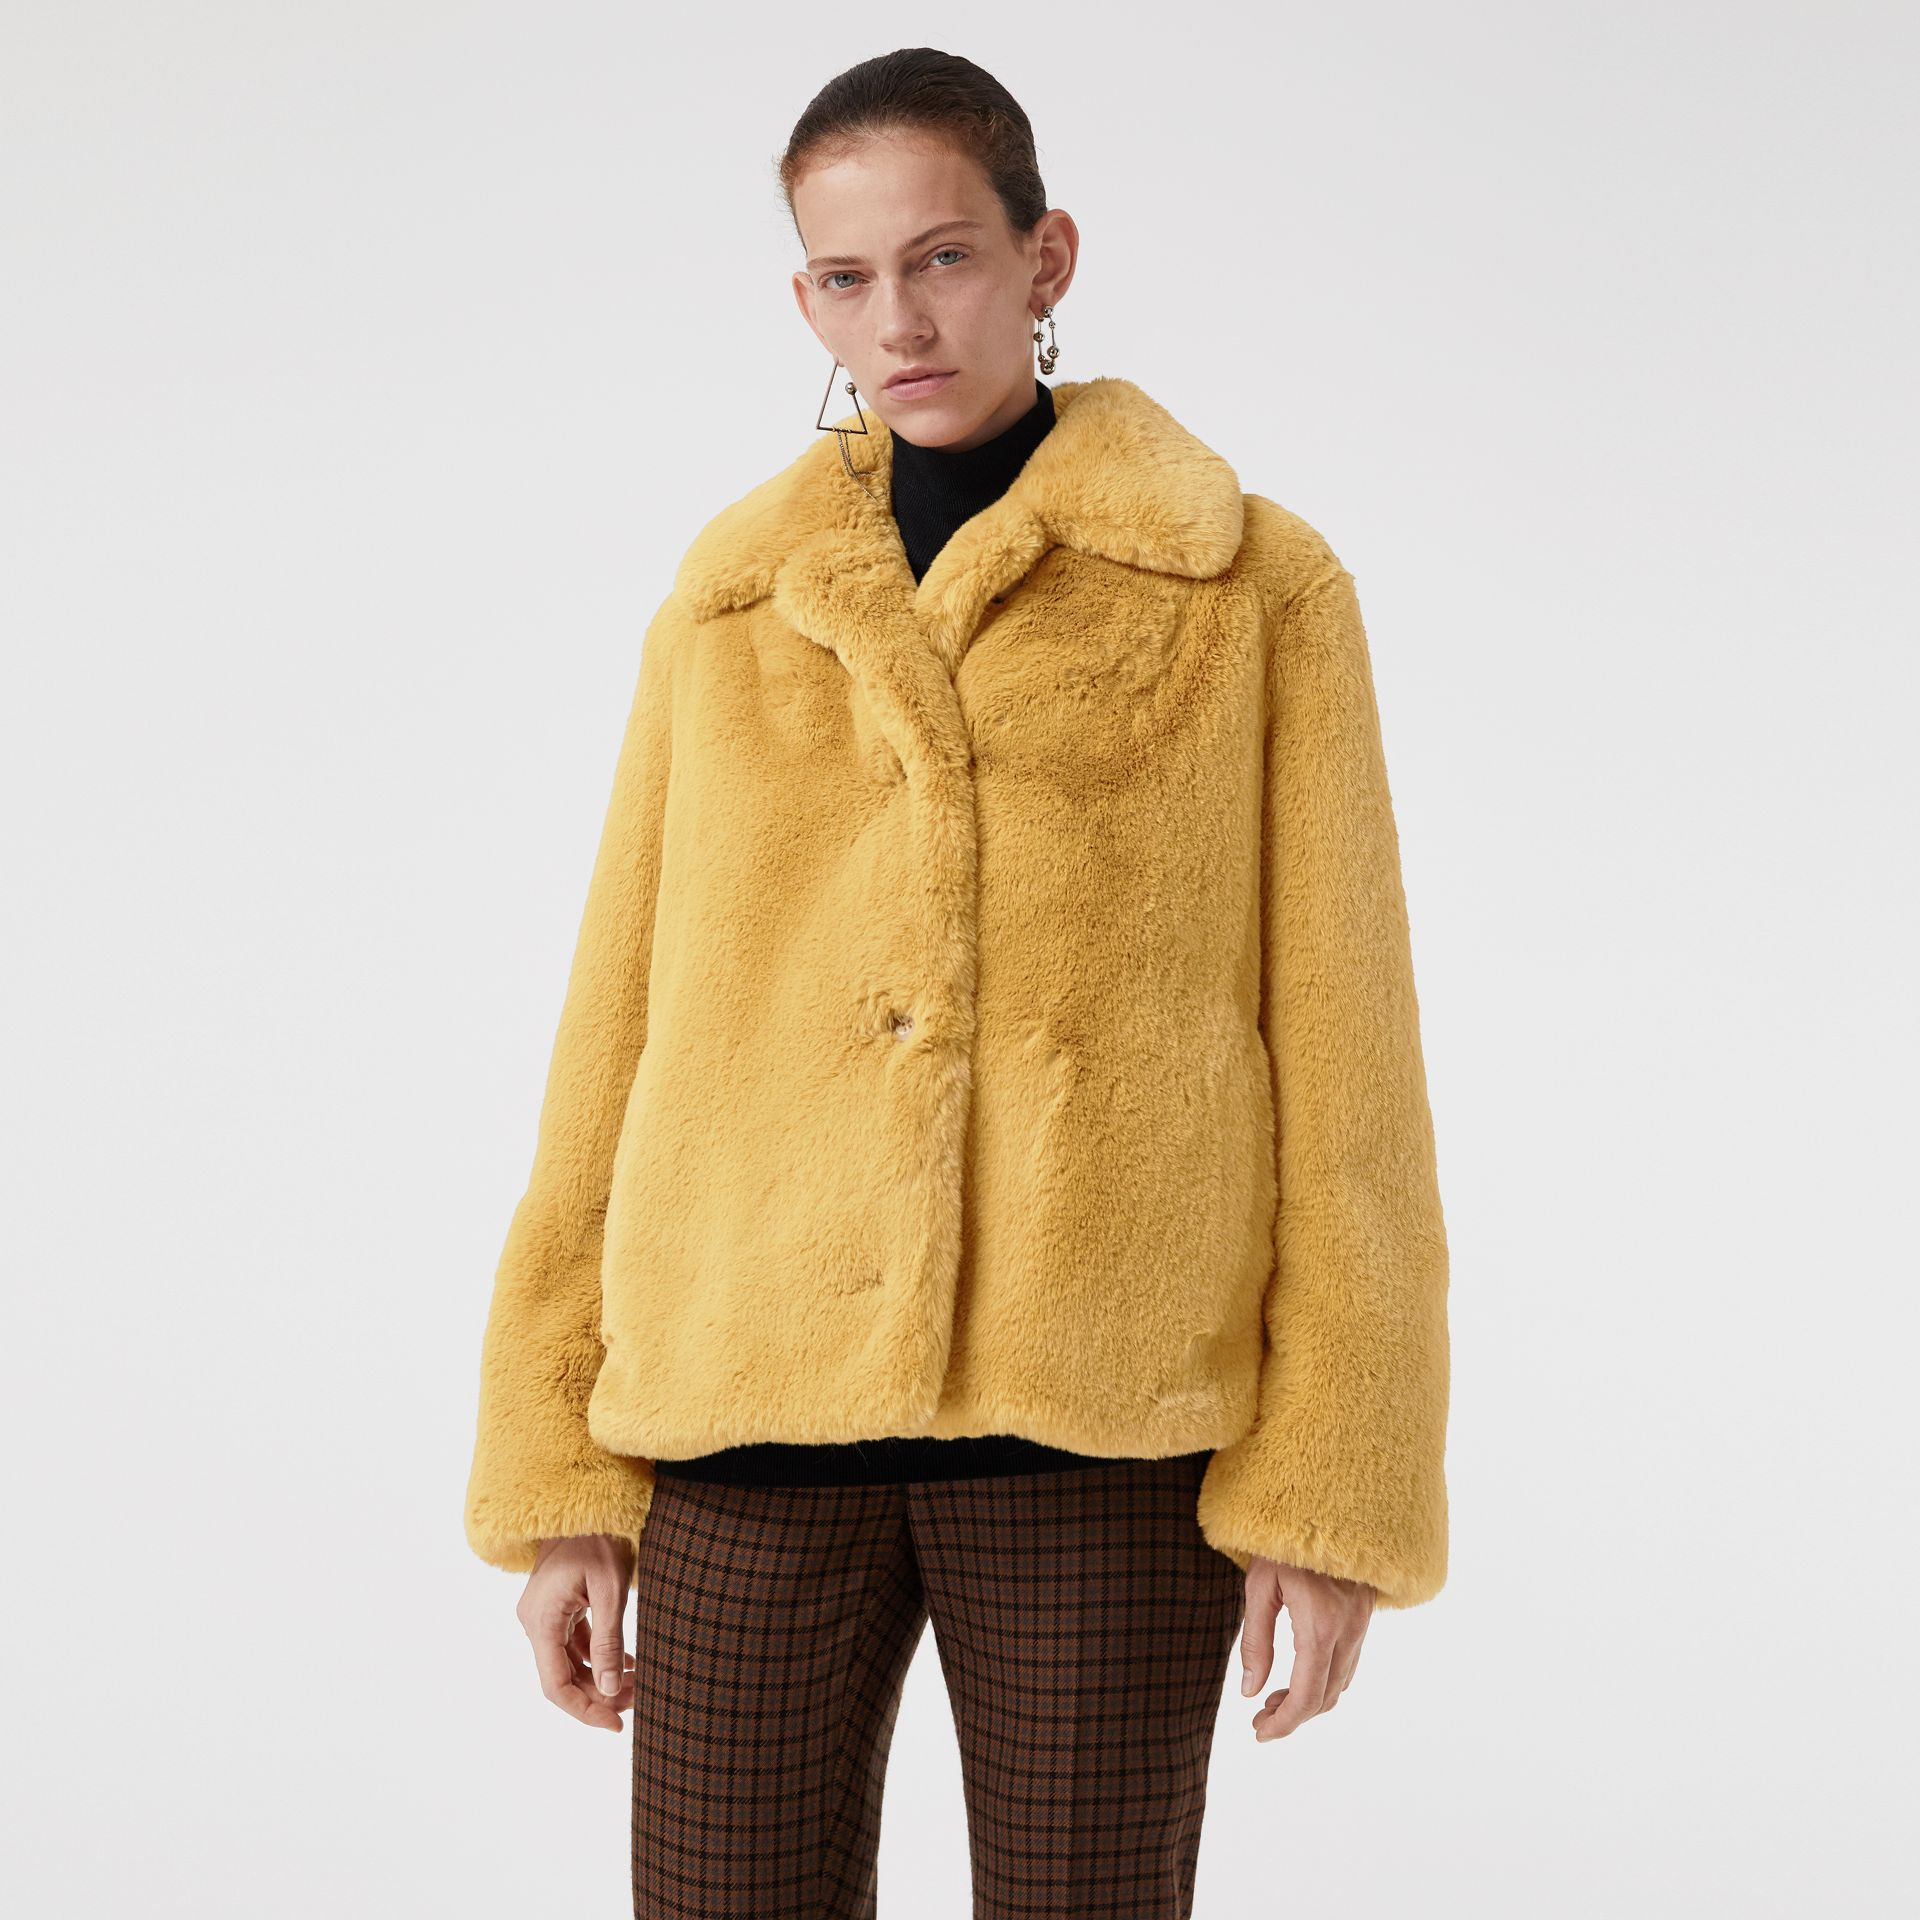 Faux Fur Single-Breasted Jacket in Ochre Yellow - Women | Burberry - gallery image 5